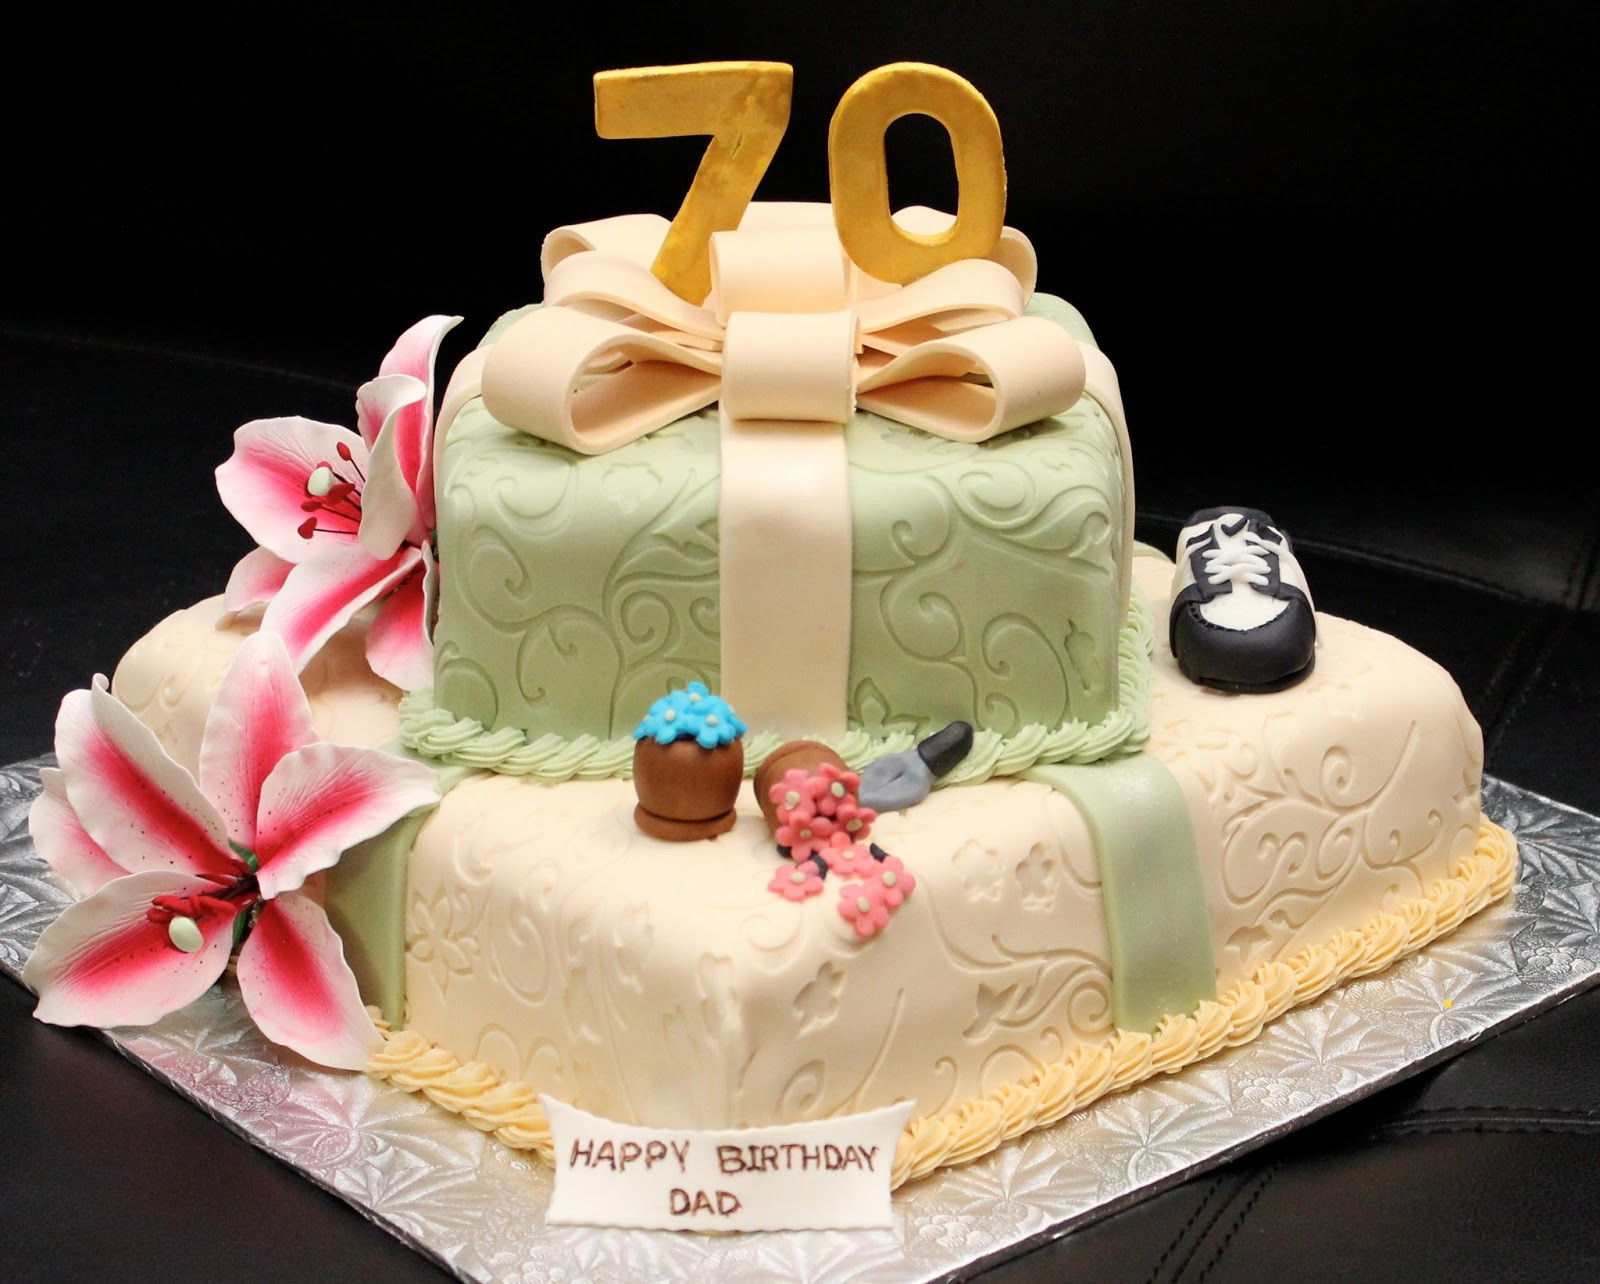 Best ideas about 70th Birthday Cake . Save or Pin Love Dem Goo s 70th Birthday Cake Now.